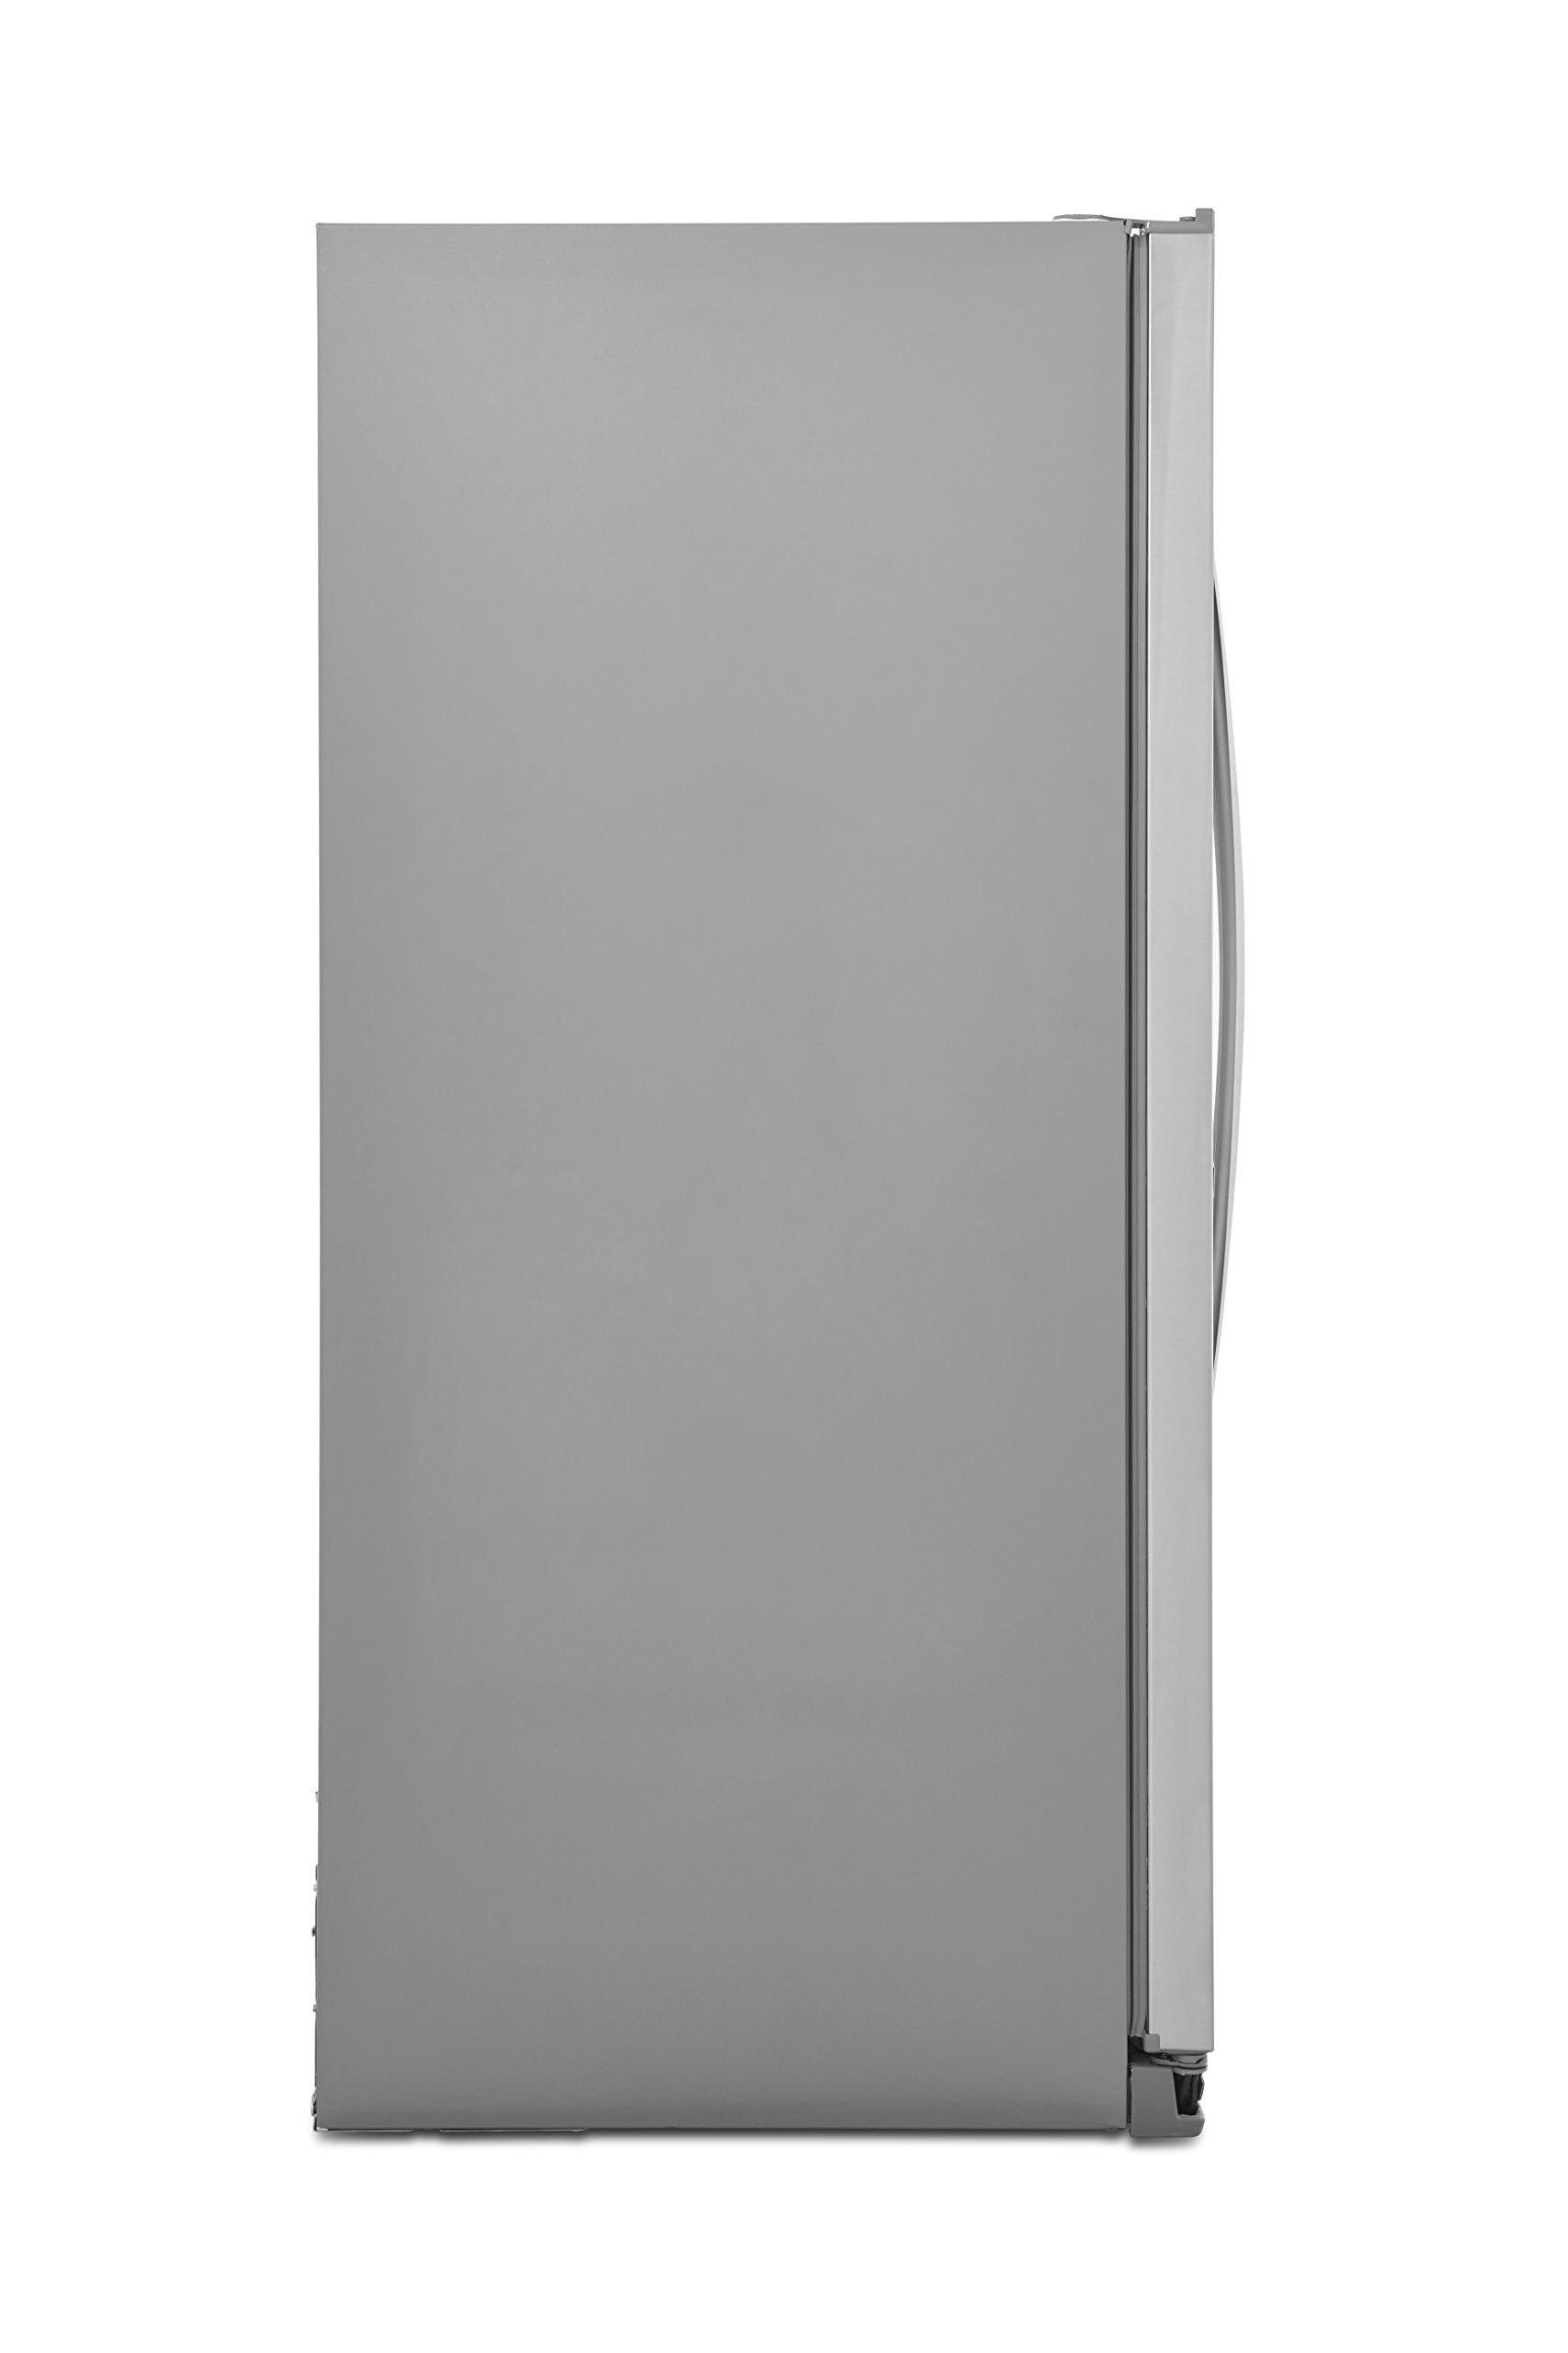 Kenmore Elite 51773 28 cu. ft. Side-by-Side Refrigerator with Accela Ice Technology in Stainless Steel, includes delivery and hookup (Available in select cities only) by Kenmore (Image #4)